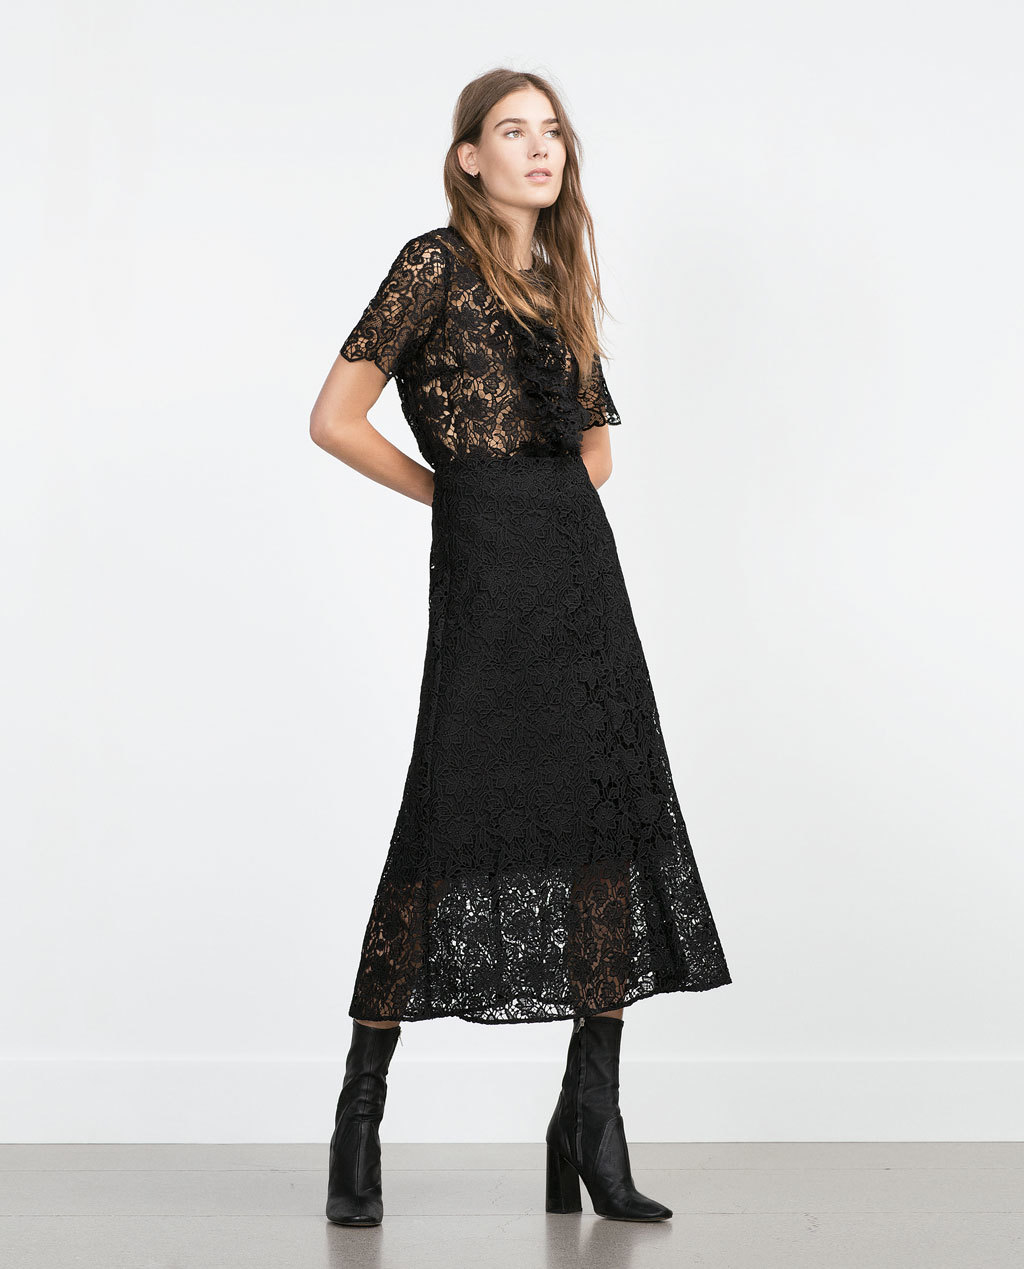 Lace Midi Skirt - length: calf length; fit: loose/voluminous; waist: high rise; predominant colour: black; occasions: evening, occasion, creative work; style: a-line; fibres: polyester/polyamide - 100%; texture group: lace; pattern type: fabric; pattern: patterned/print; pattern size: standard (bottom); season: a/w 2015; trends: romantic goth; wardrobe: highlight